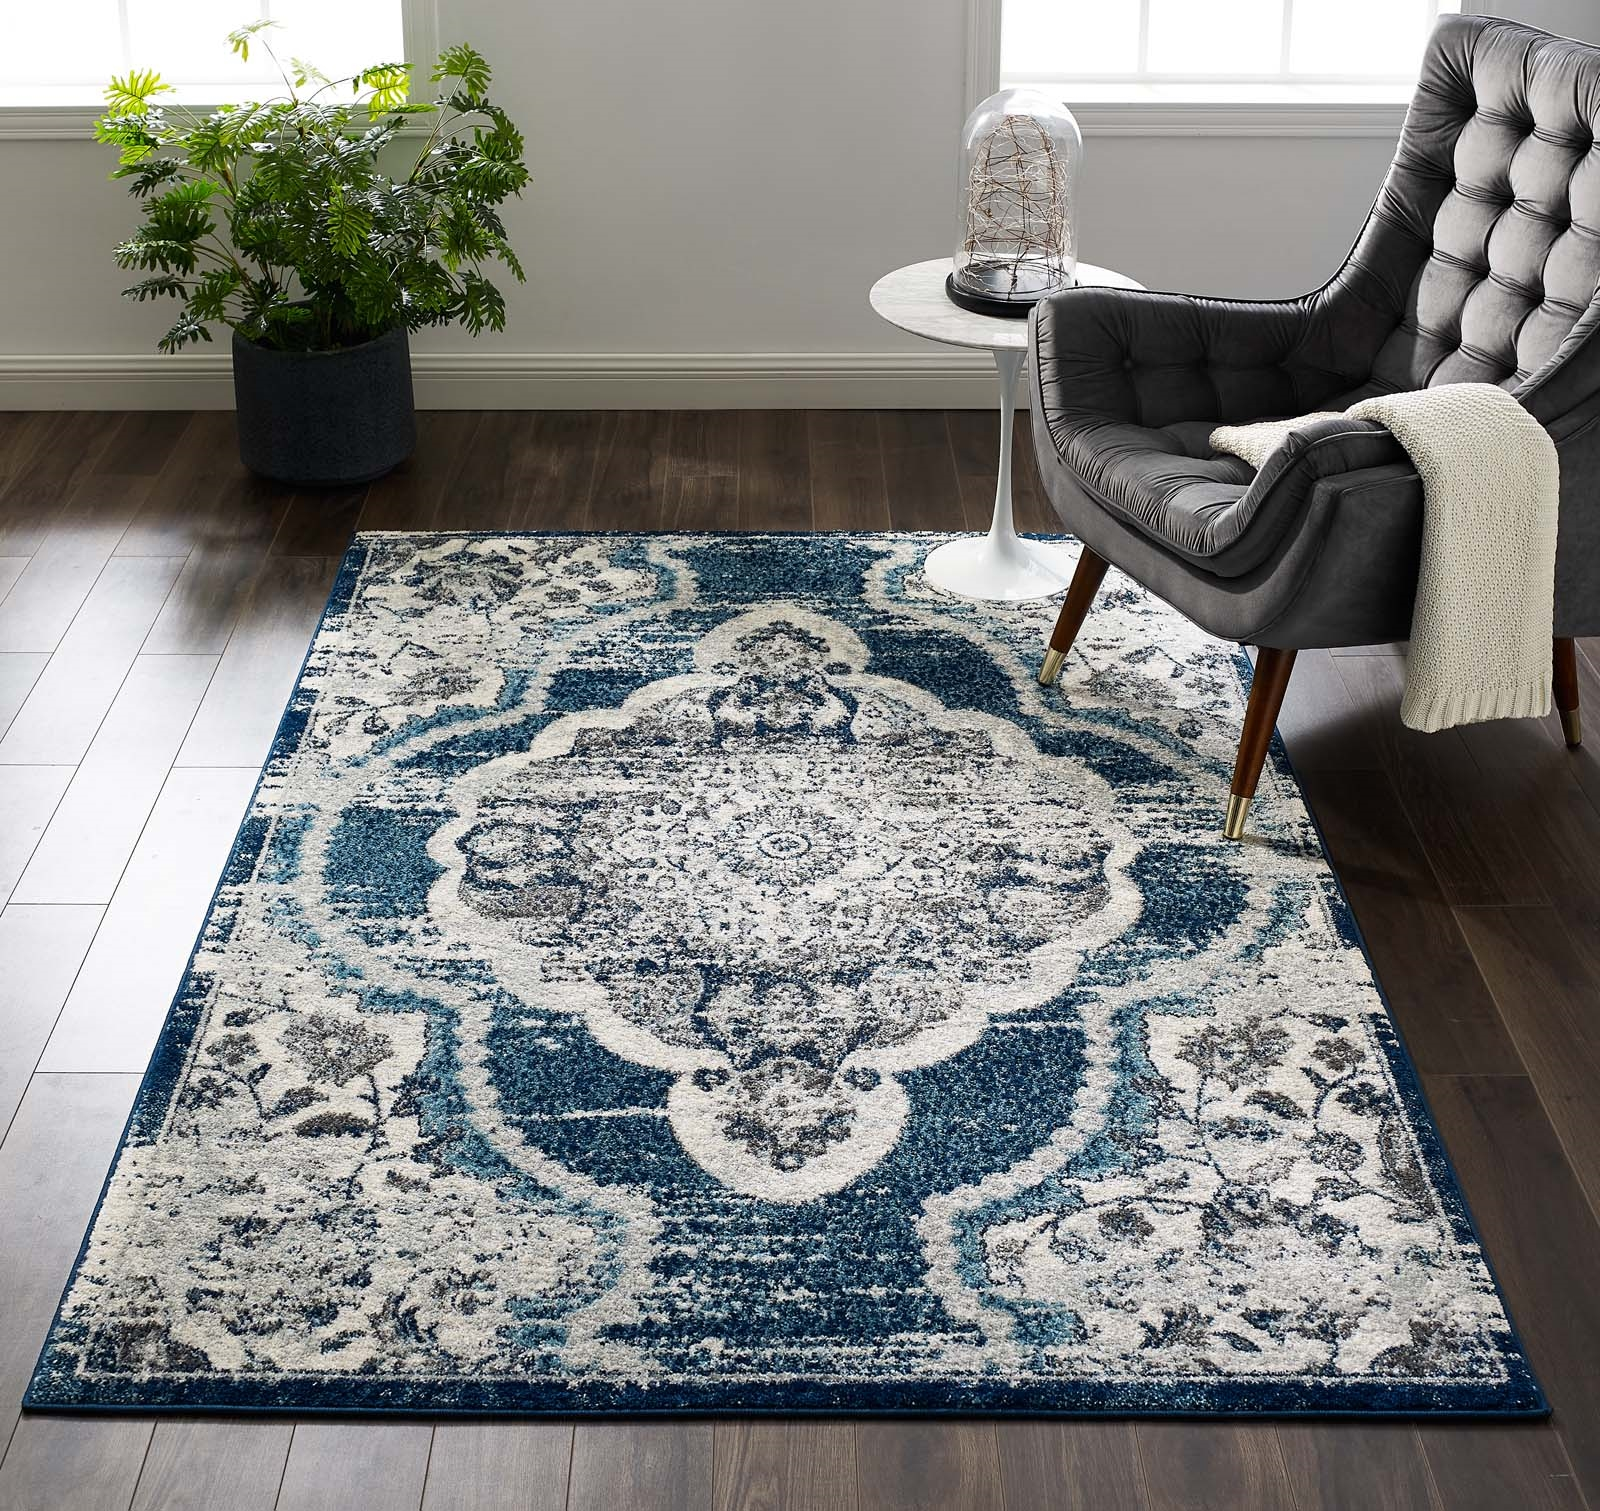 Entourage Malia Distressed Vintage Floral Persian Medallion 5x8 Area Rug in Ivory and Blue